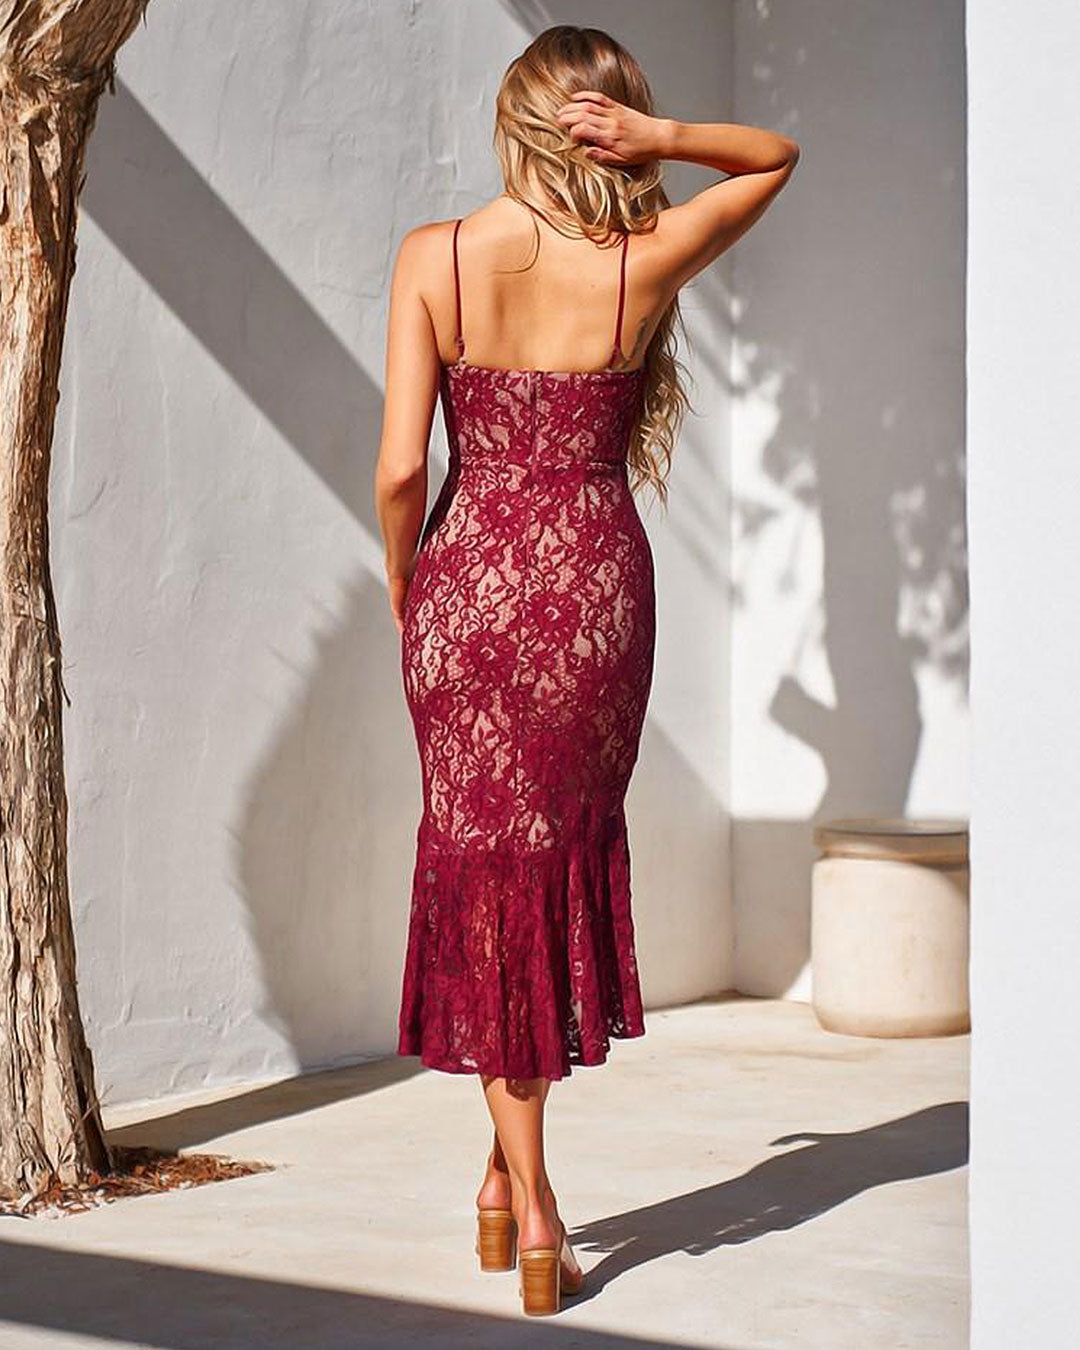 Amylia Lace Midi Dress - Red - Miss Runway Boutique